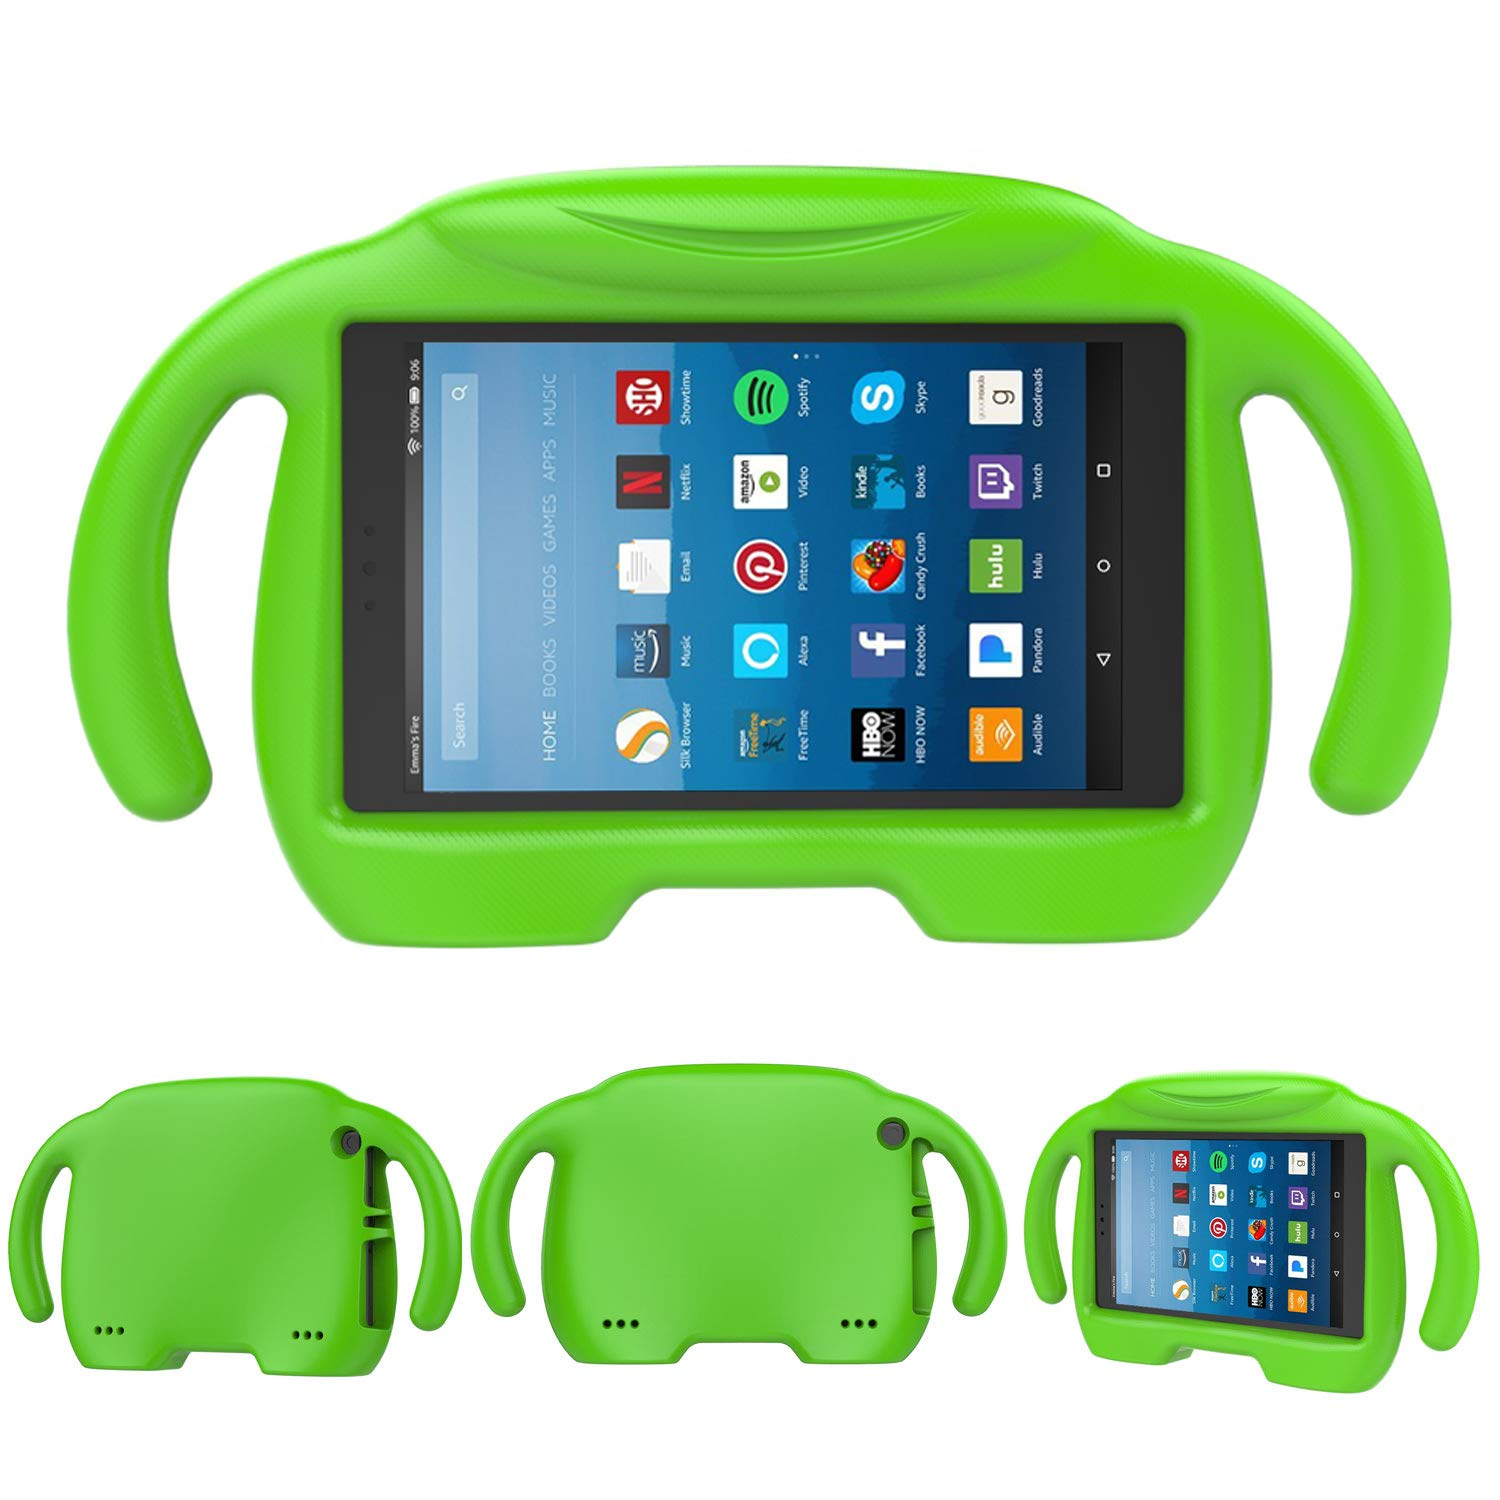 Fire HD 8 Kids Case- TIRIN Light Weight Shock Proof Handle Kid –Proof Cover Kids Case for Amazon Fire HD 8 (7th and 8th Generation Tablet, 2017 and 2018 Release), Green